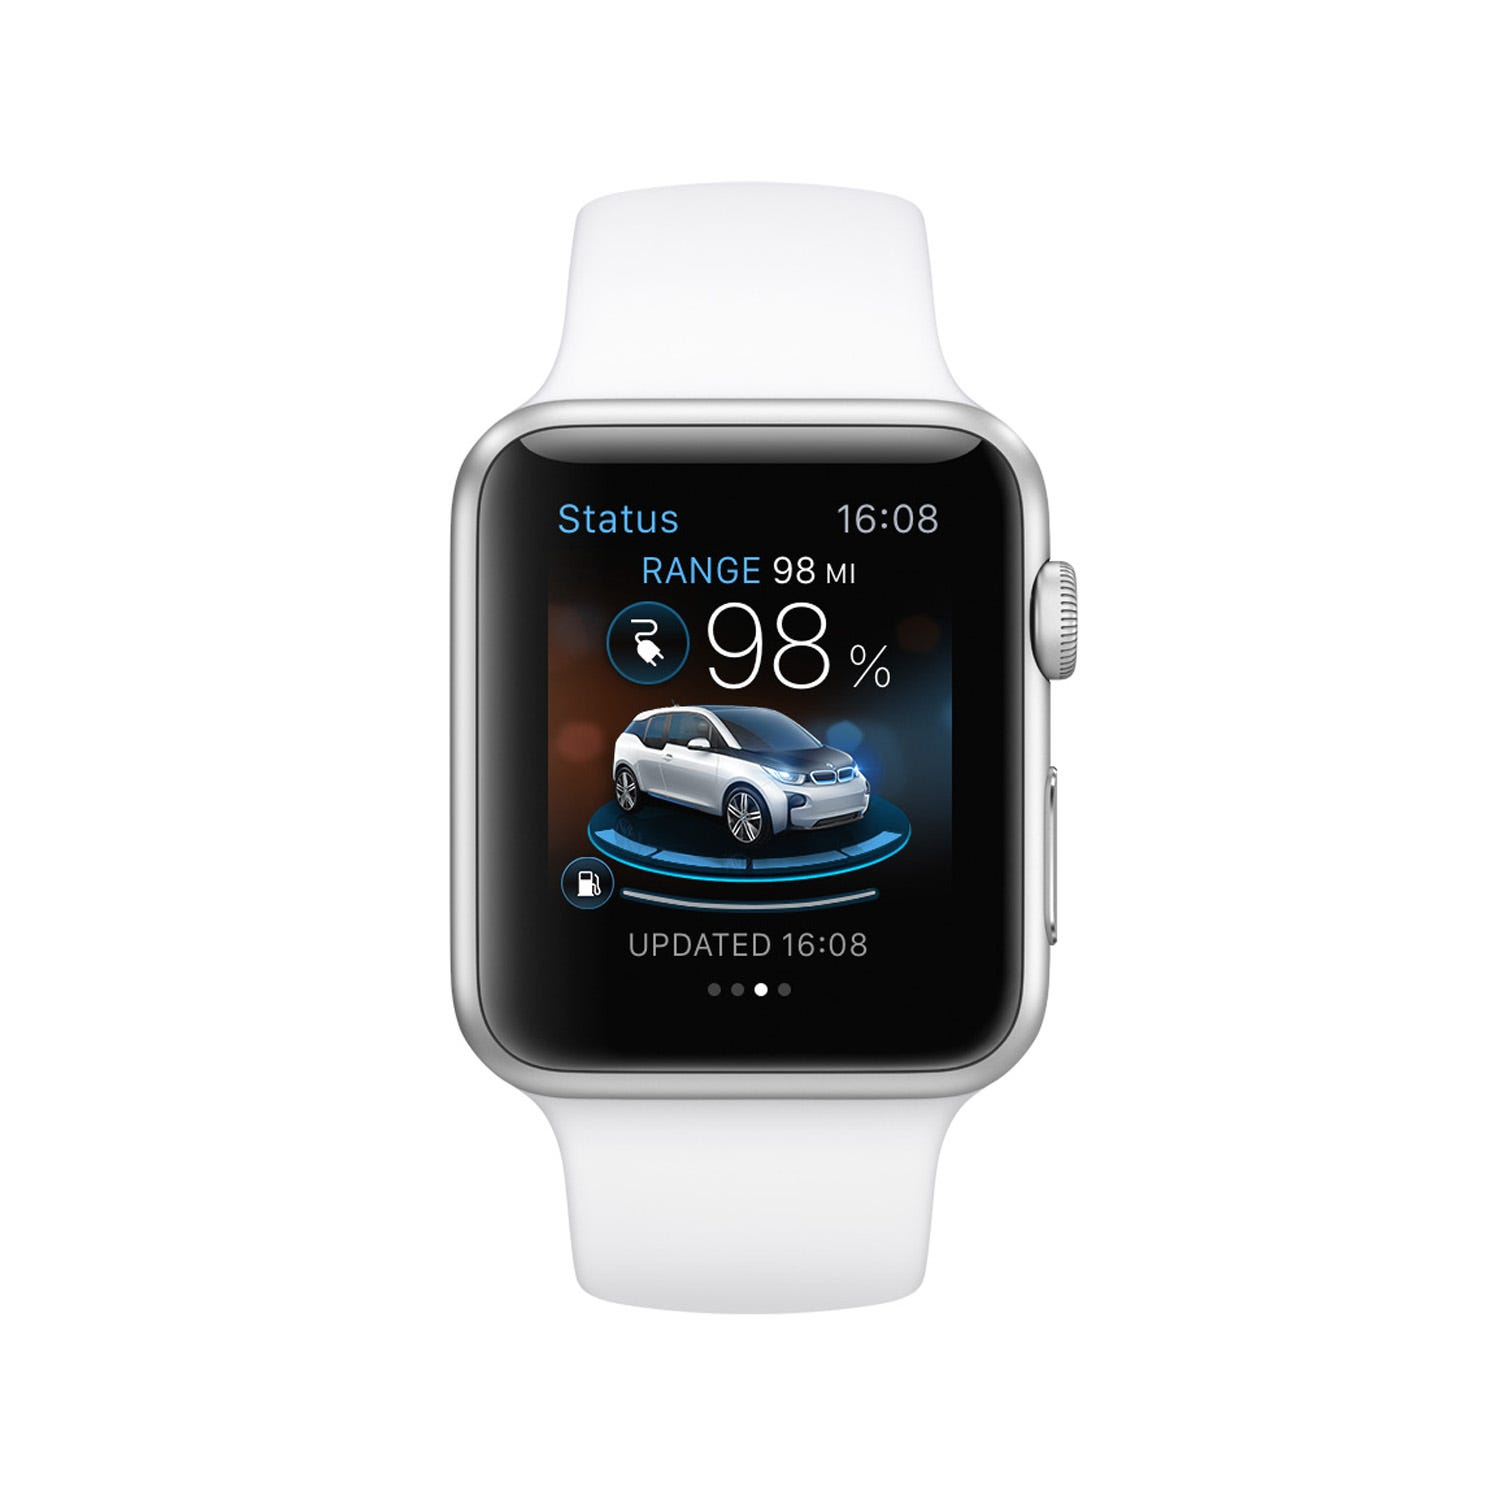 BMW, Porsche roll out Apple Watch apps for cars